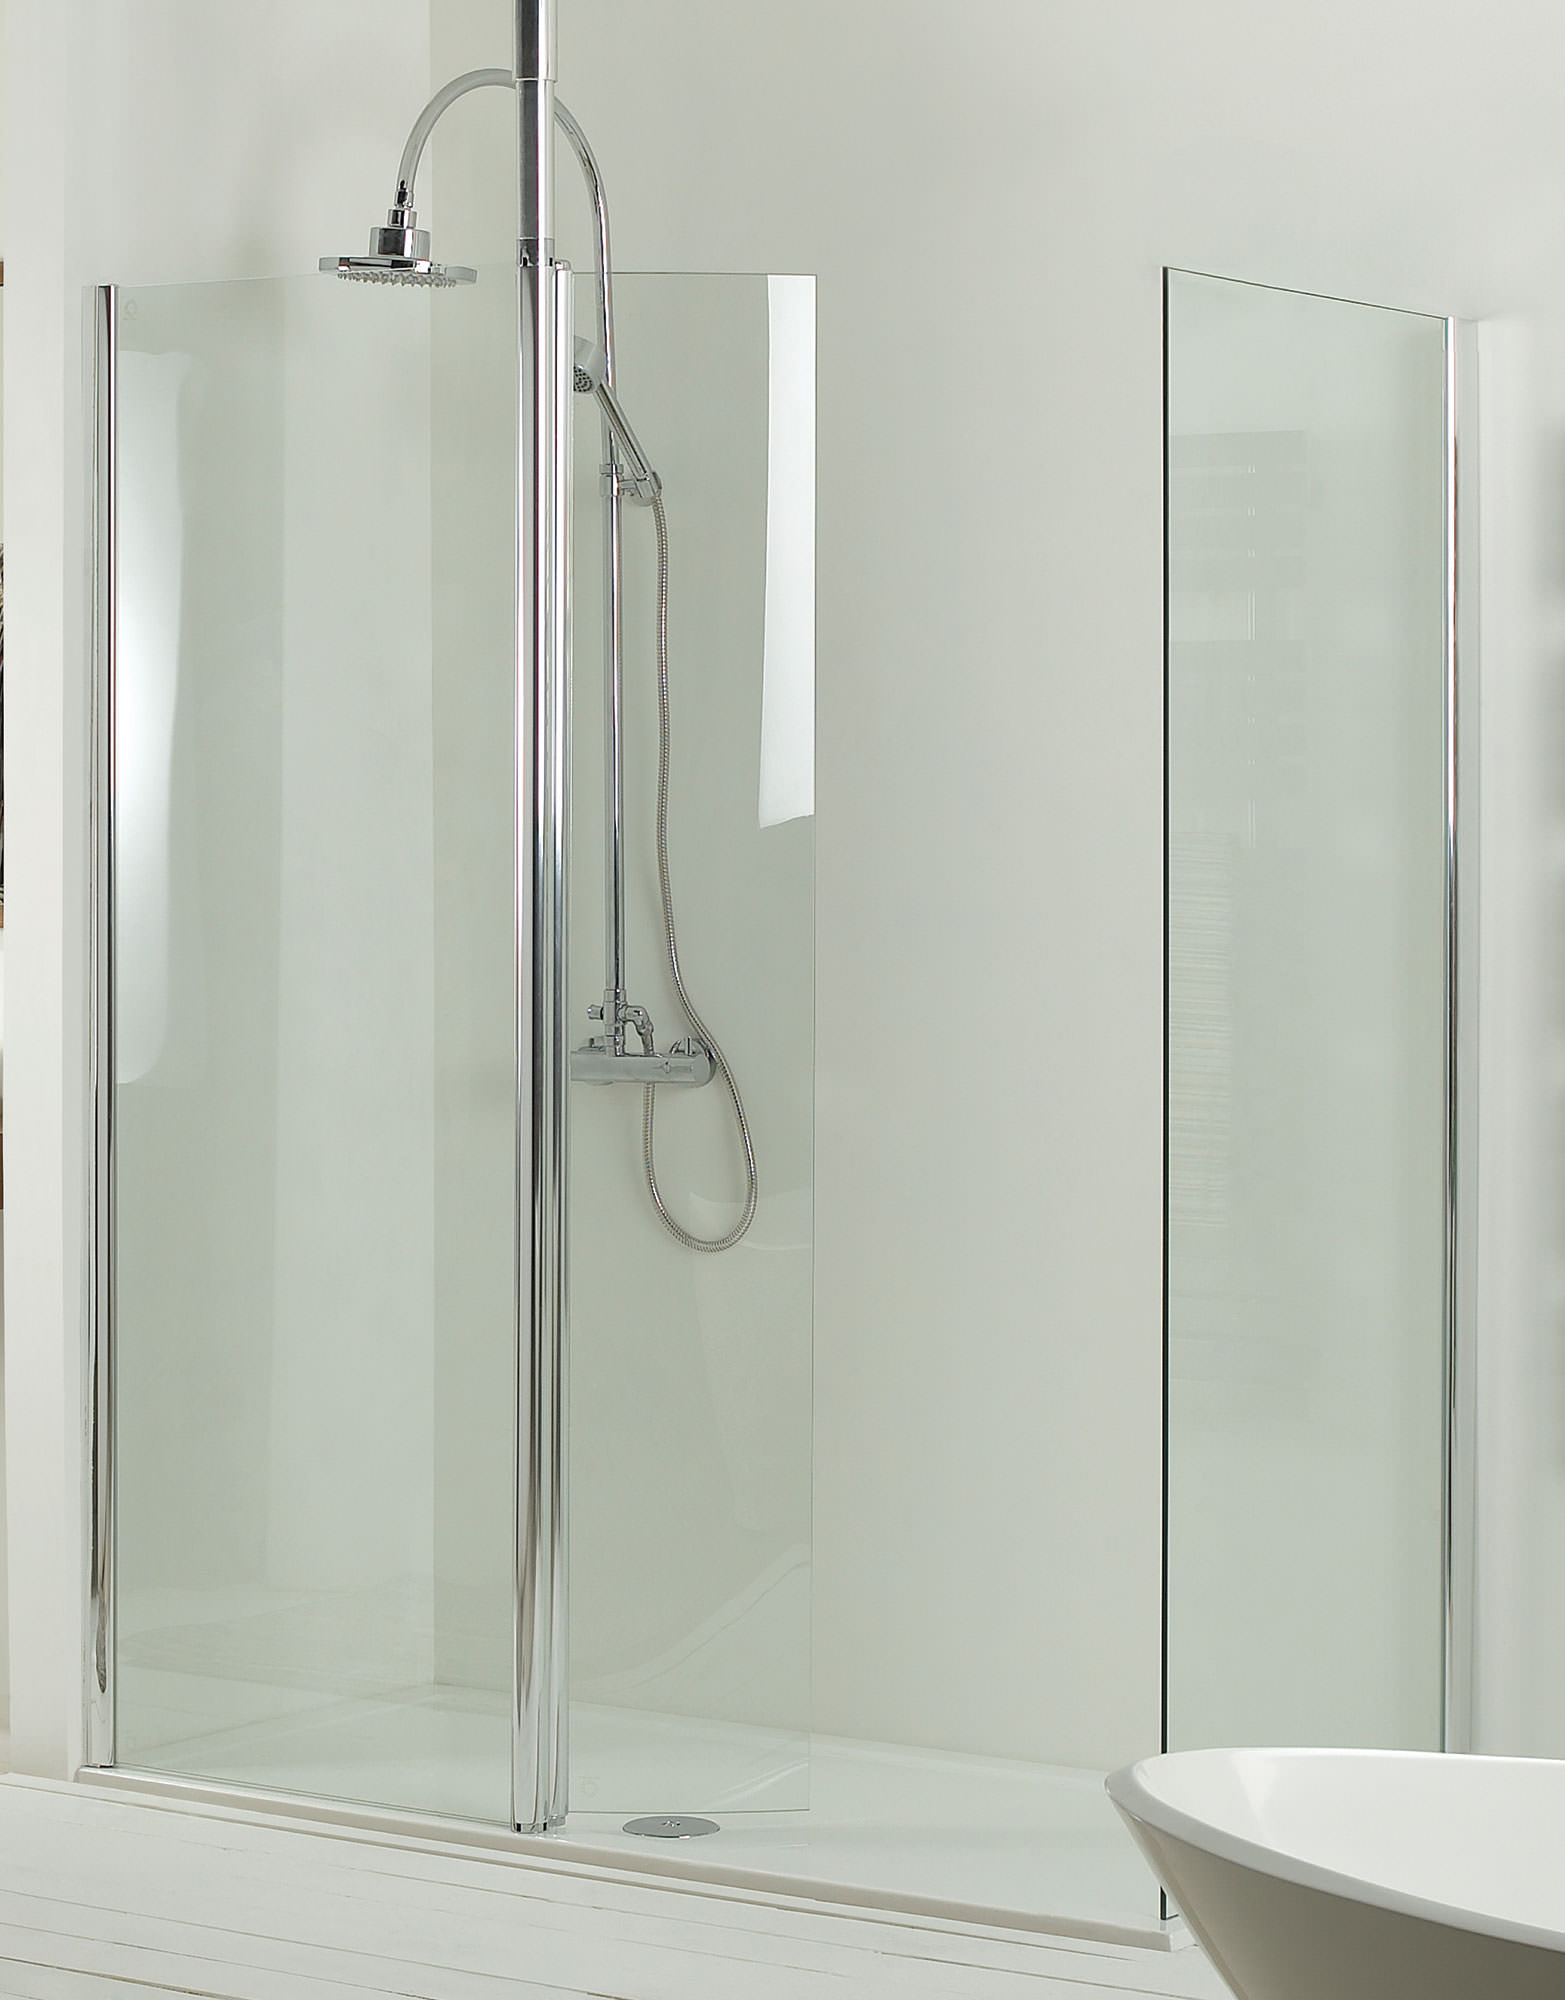 Swing Glass Shower Doors Resolution 1565 x 2000 Download picture ...